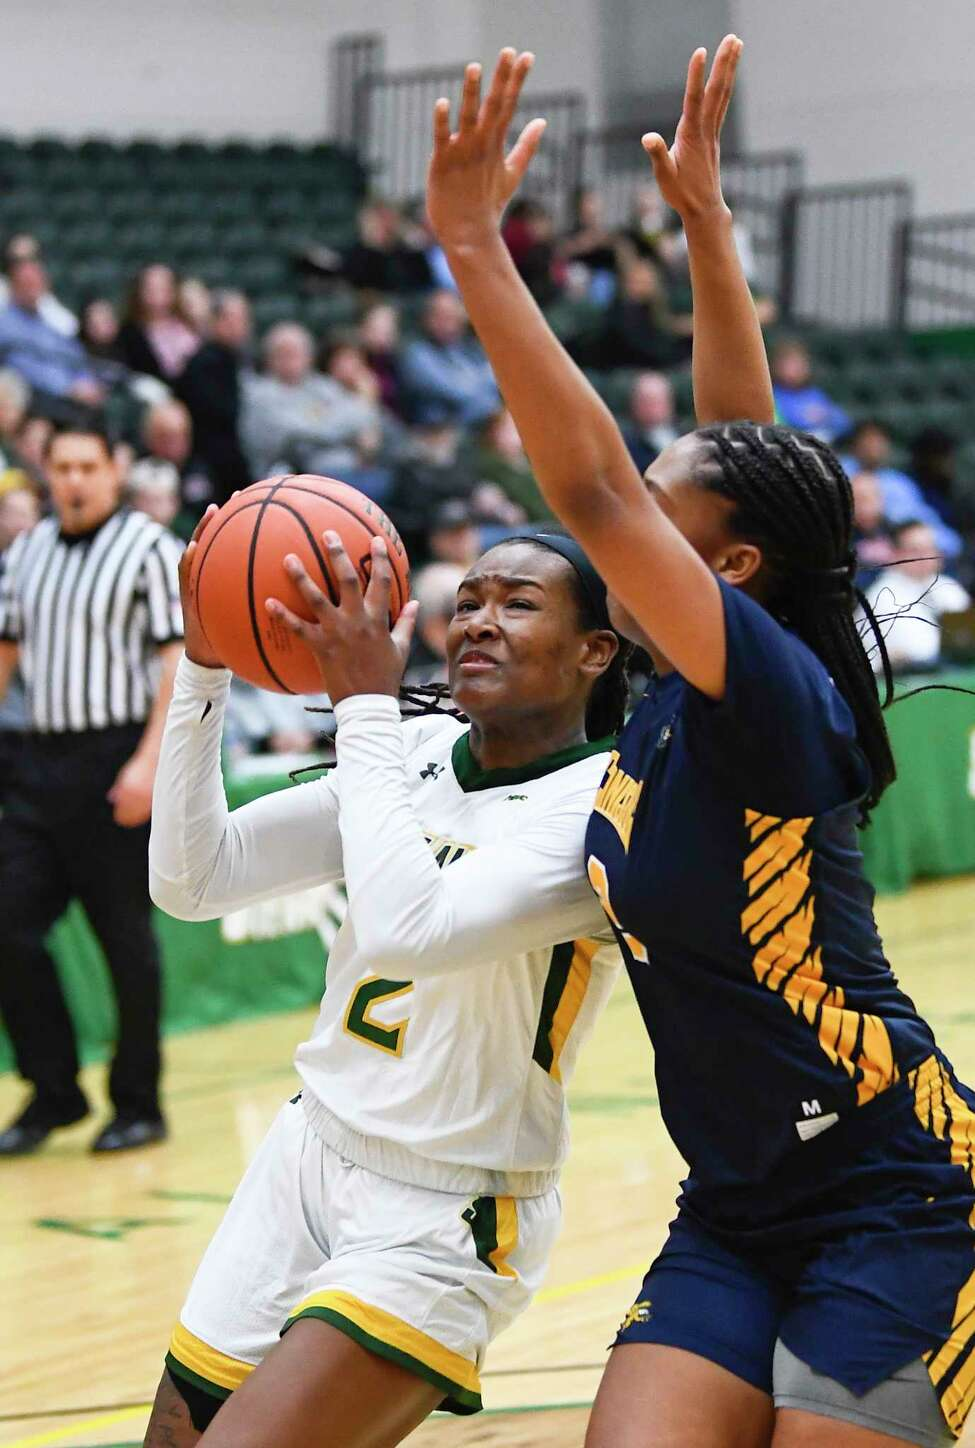 Siena guard Amari Anthony, left, scores against Canisius guard Shayla Sweeney during the first half of a NCAA women's college basketball game, Saturday, Feb. 1, 2020, in Loudonville, N.Y.